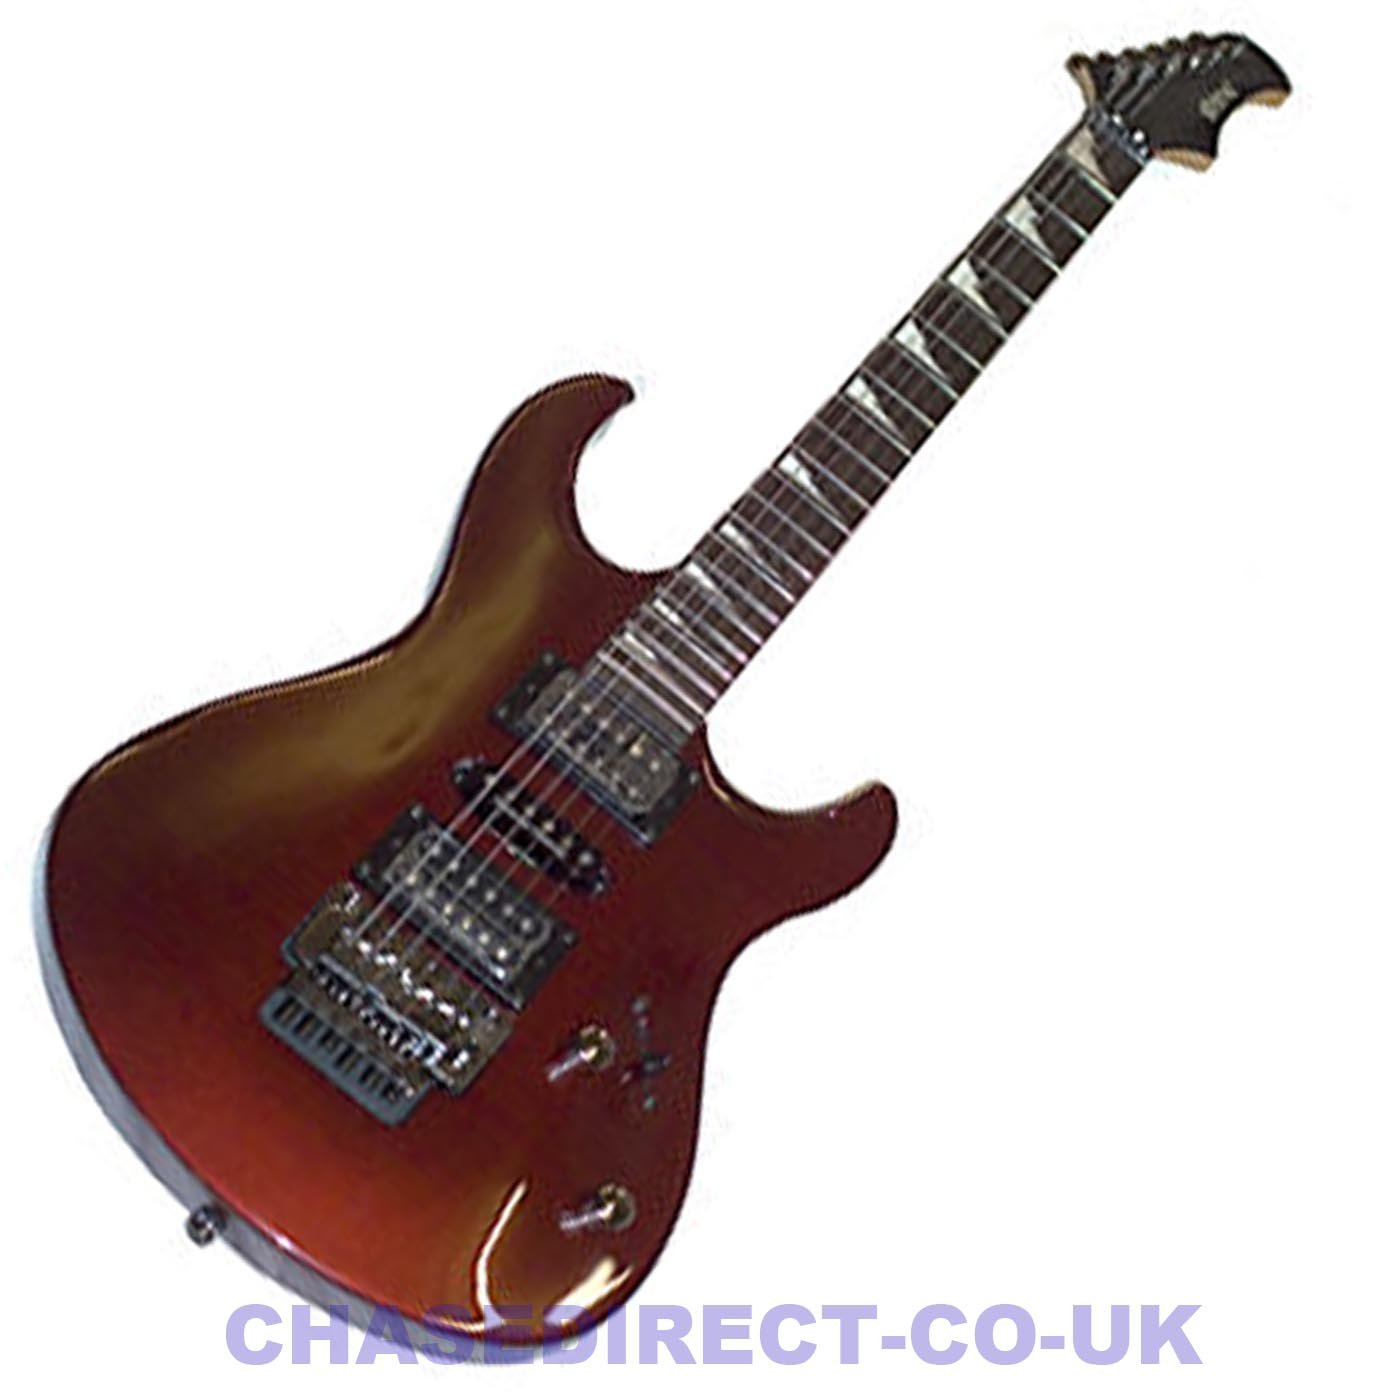 Shine By Chase Electric Guitar SD-220 Seymour Duncan Pickups